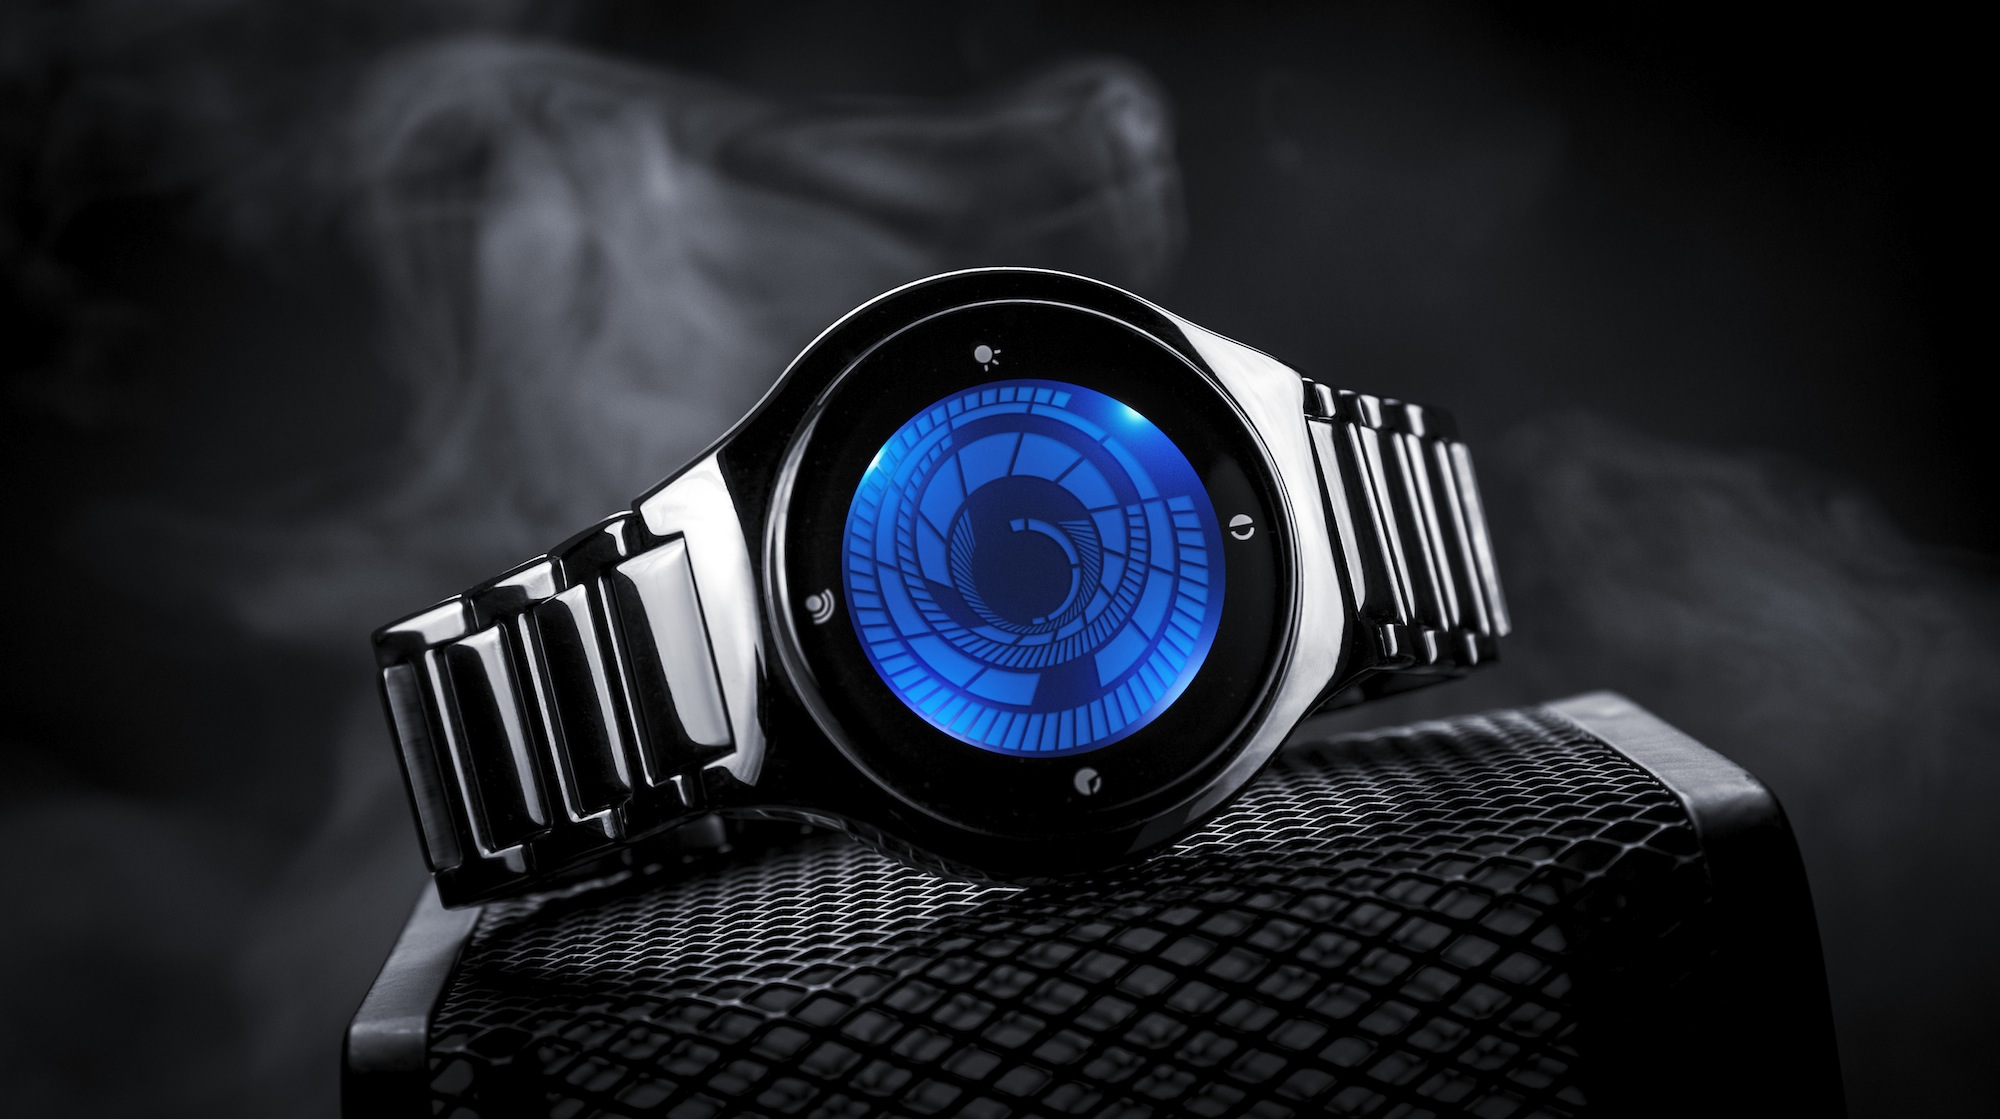 kisai_vortex_touch_screen_led_watch_from_tokyoflash_japan_05